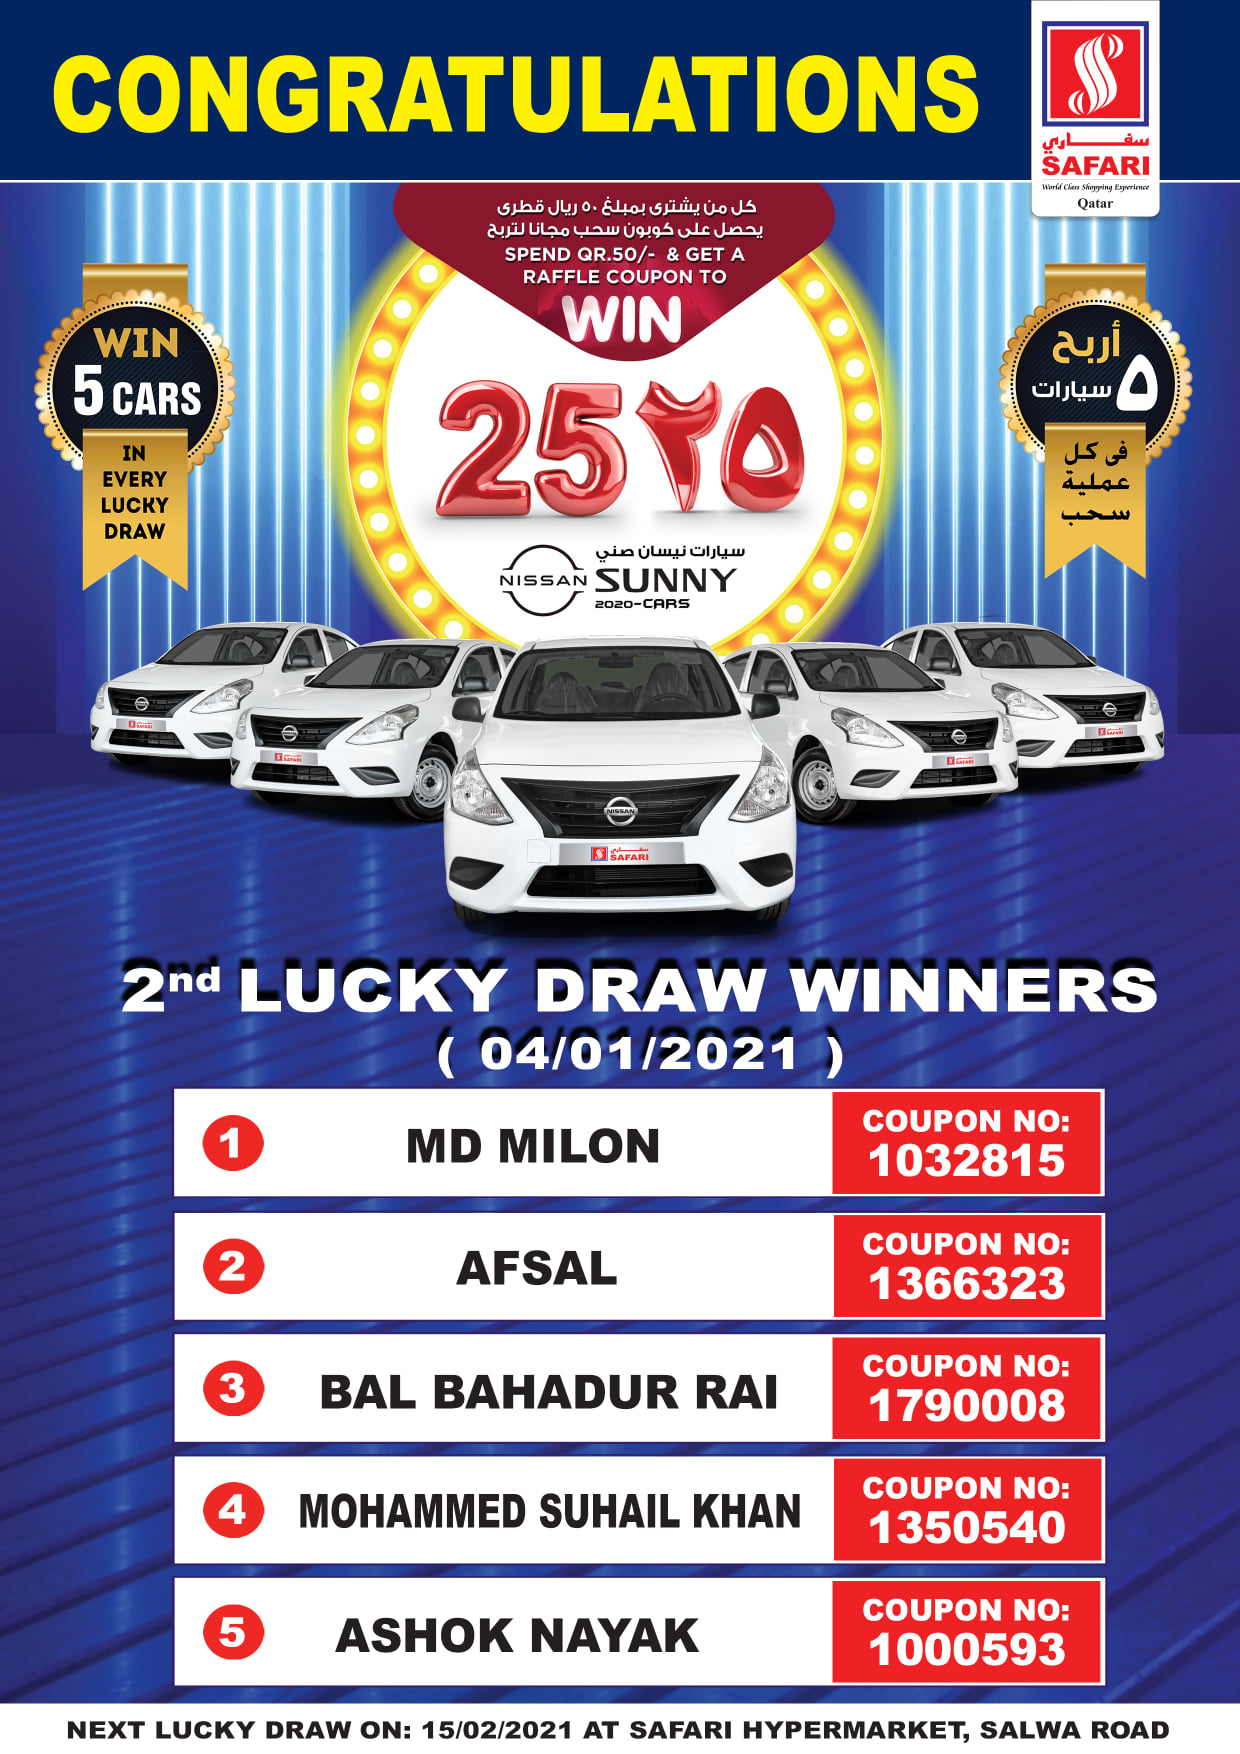 2nd Lucky Draw winners of Win 25 Nissan Sunny Cars